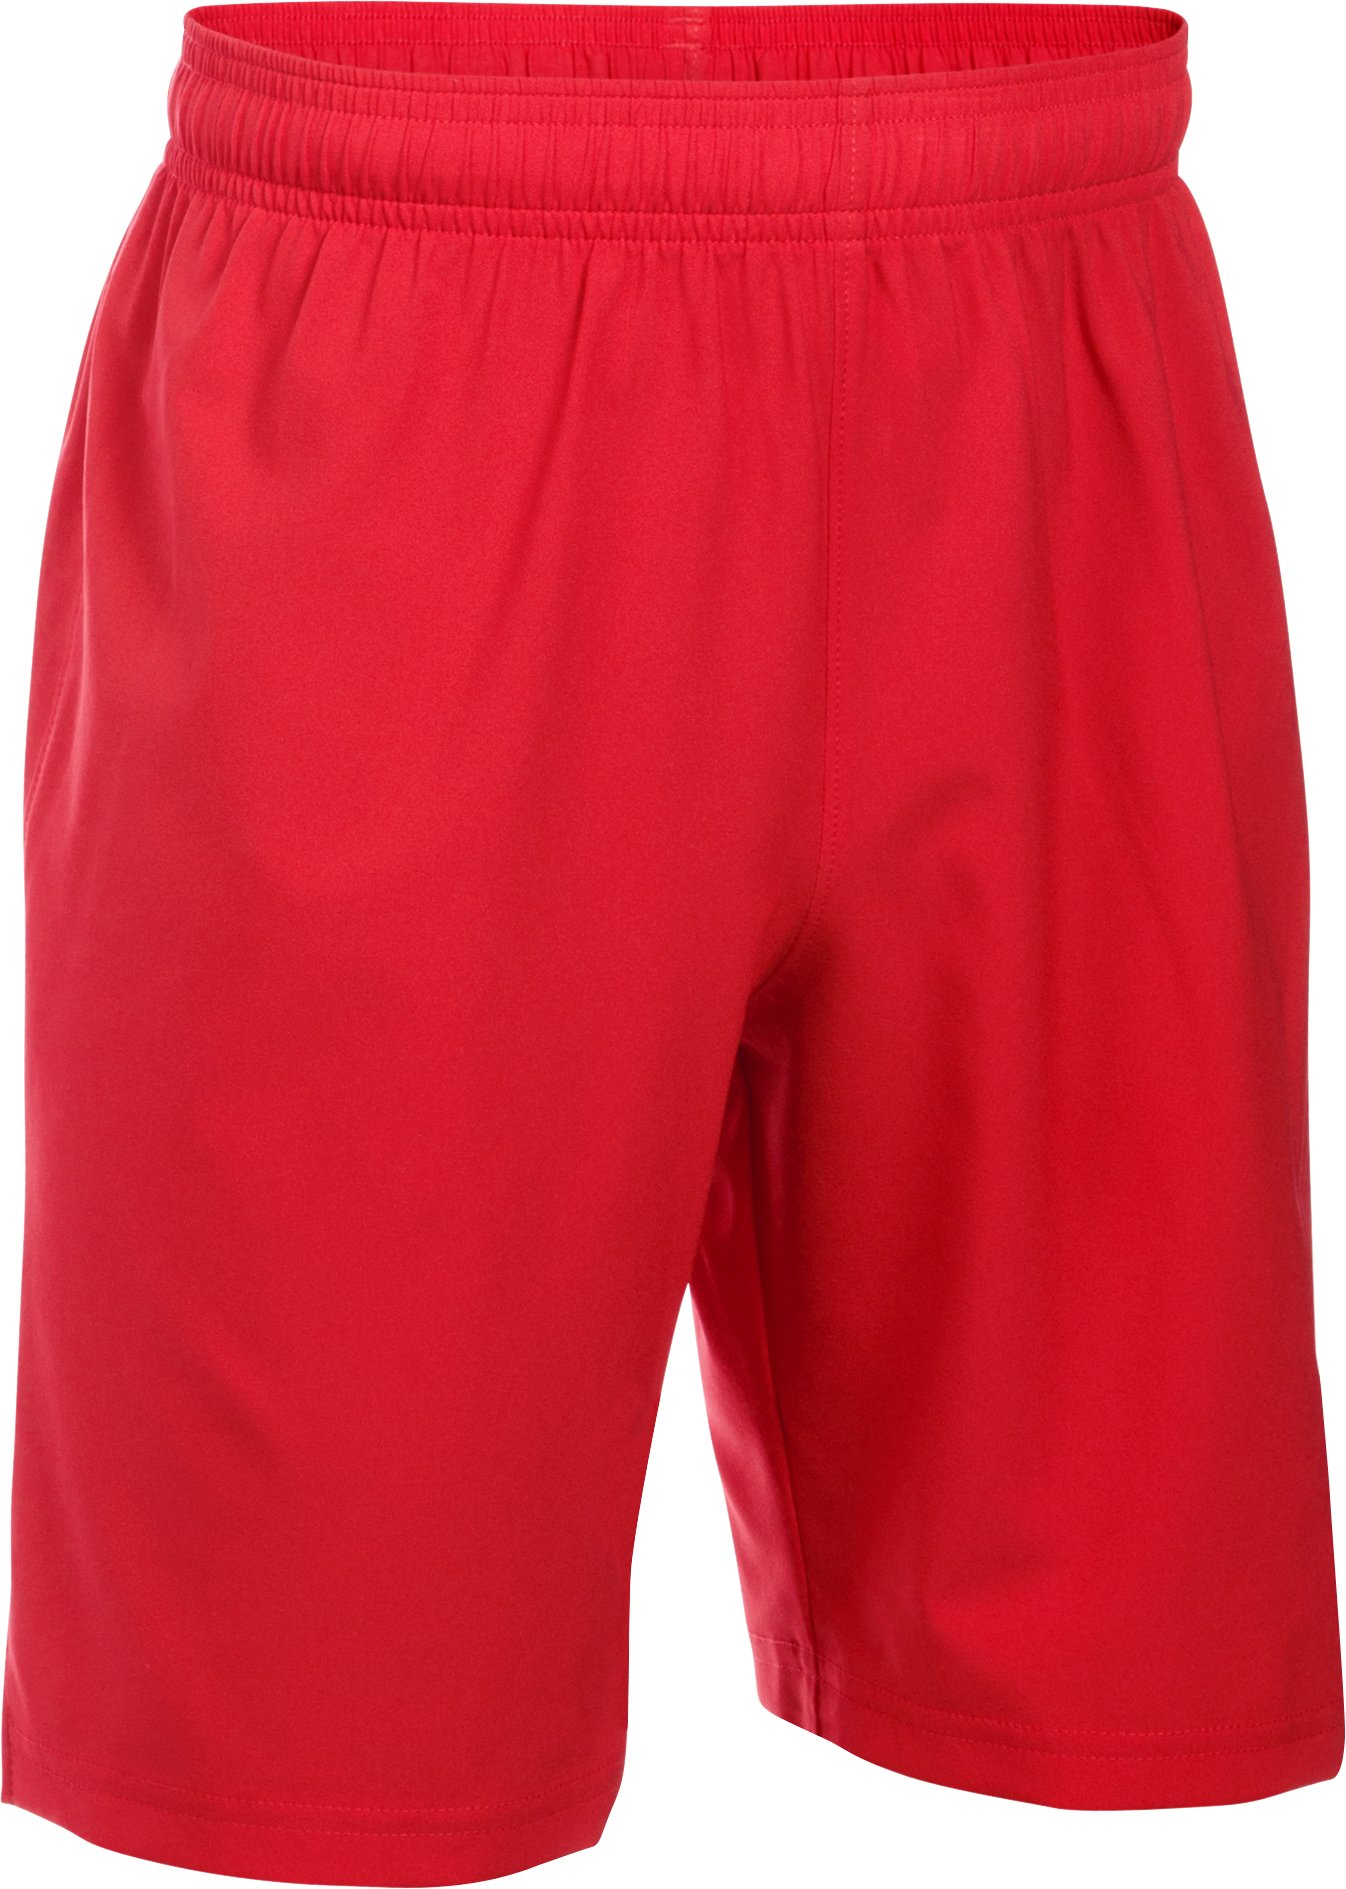 Boys' UA Hustle Shorts, Red, zoomed image